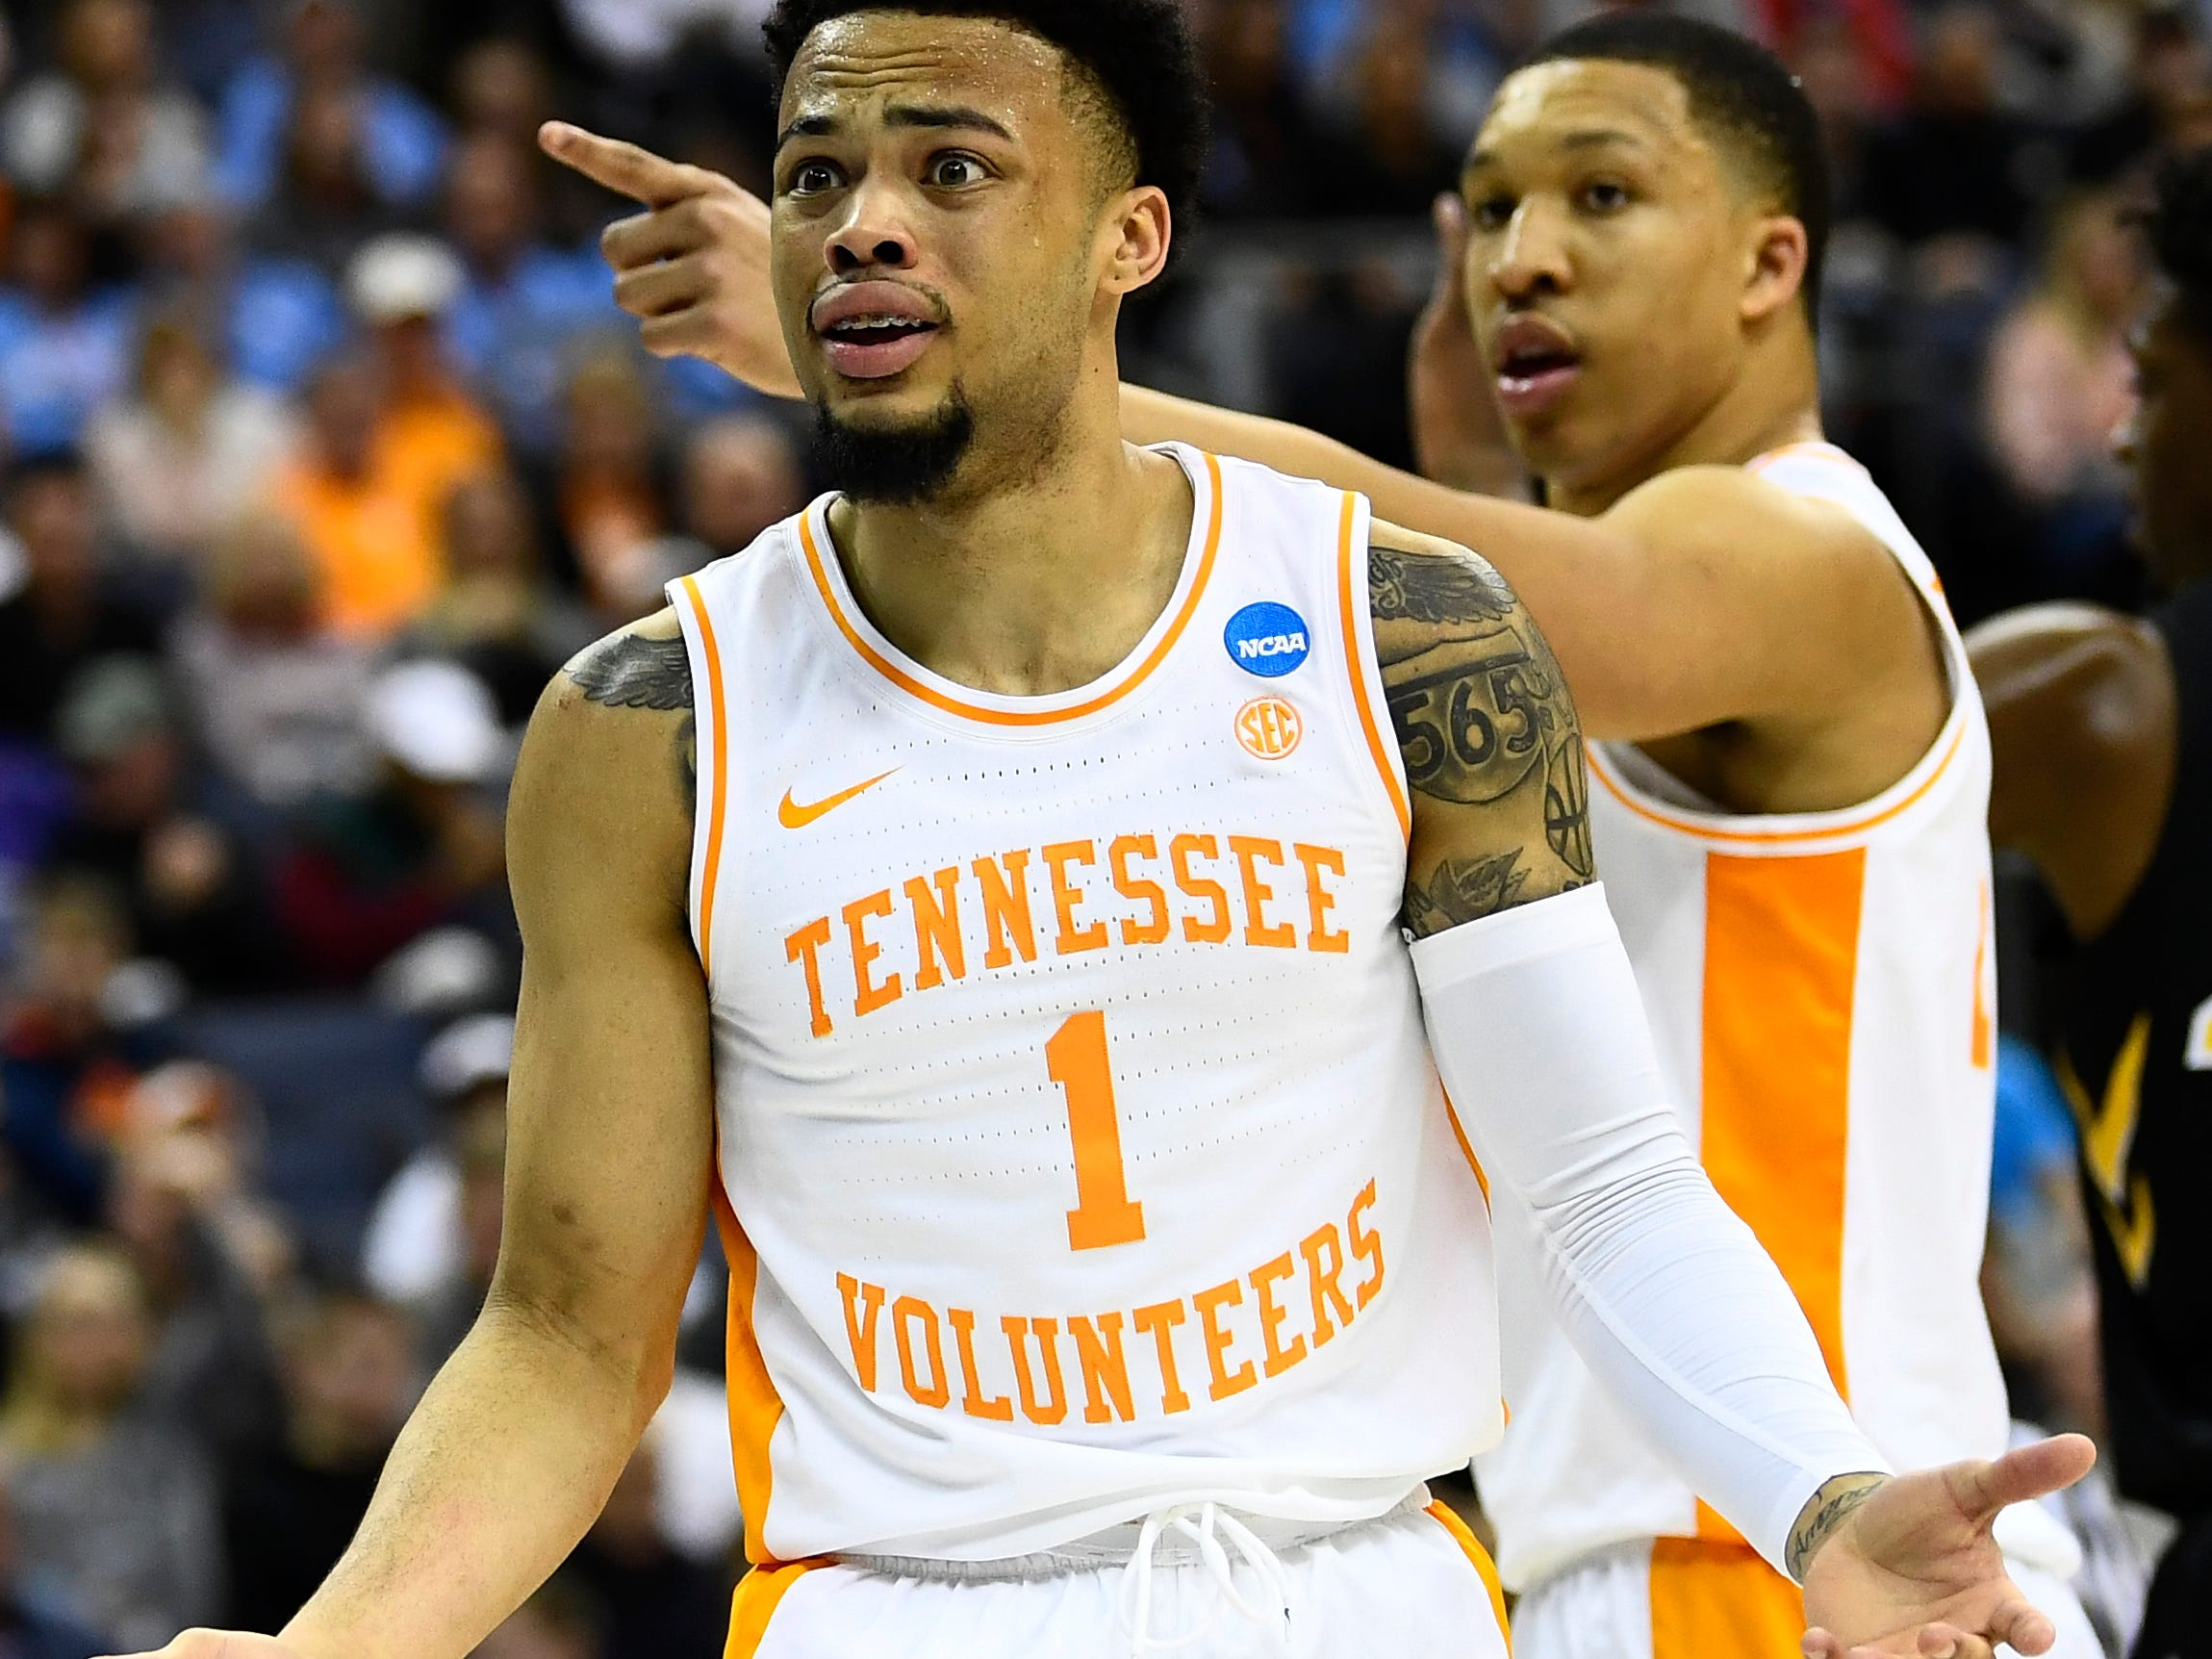 Tennessee guard Lamonte Turner (1) and Tennessee forward Grant Williams (2) look to the referees for a foul call against Iowa during the second half in the second round of the NCAA Tournament at Nationwide Arena in Columbus, Ohio, Sunday, March 24, 2019.